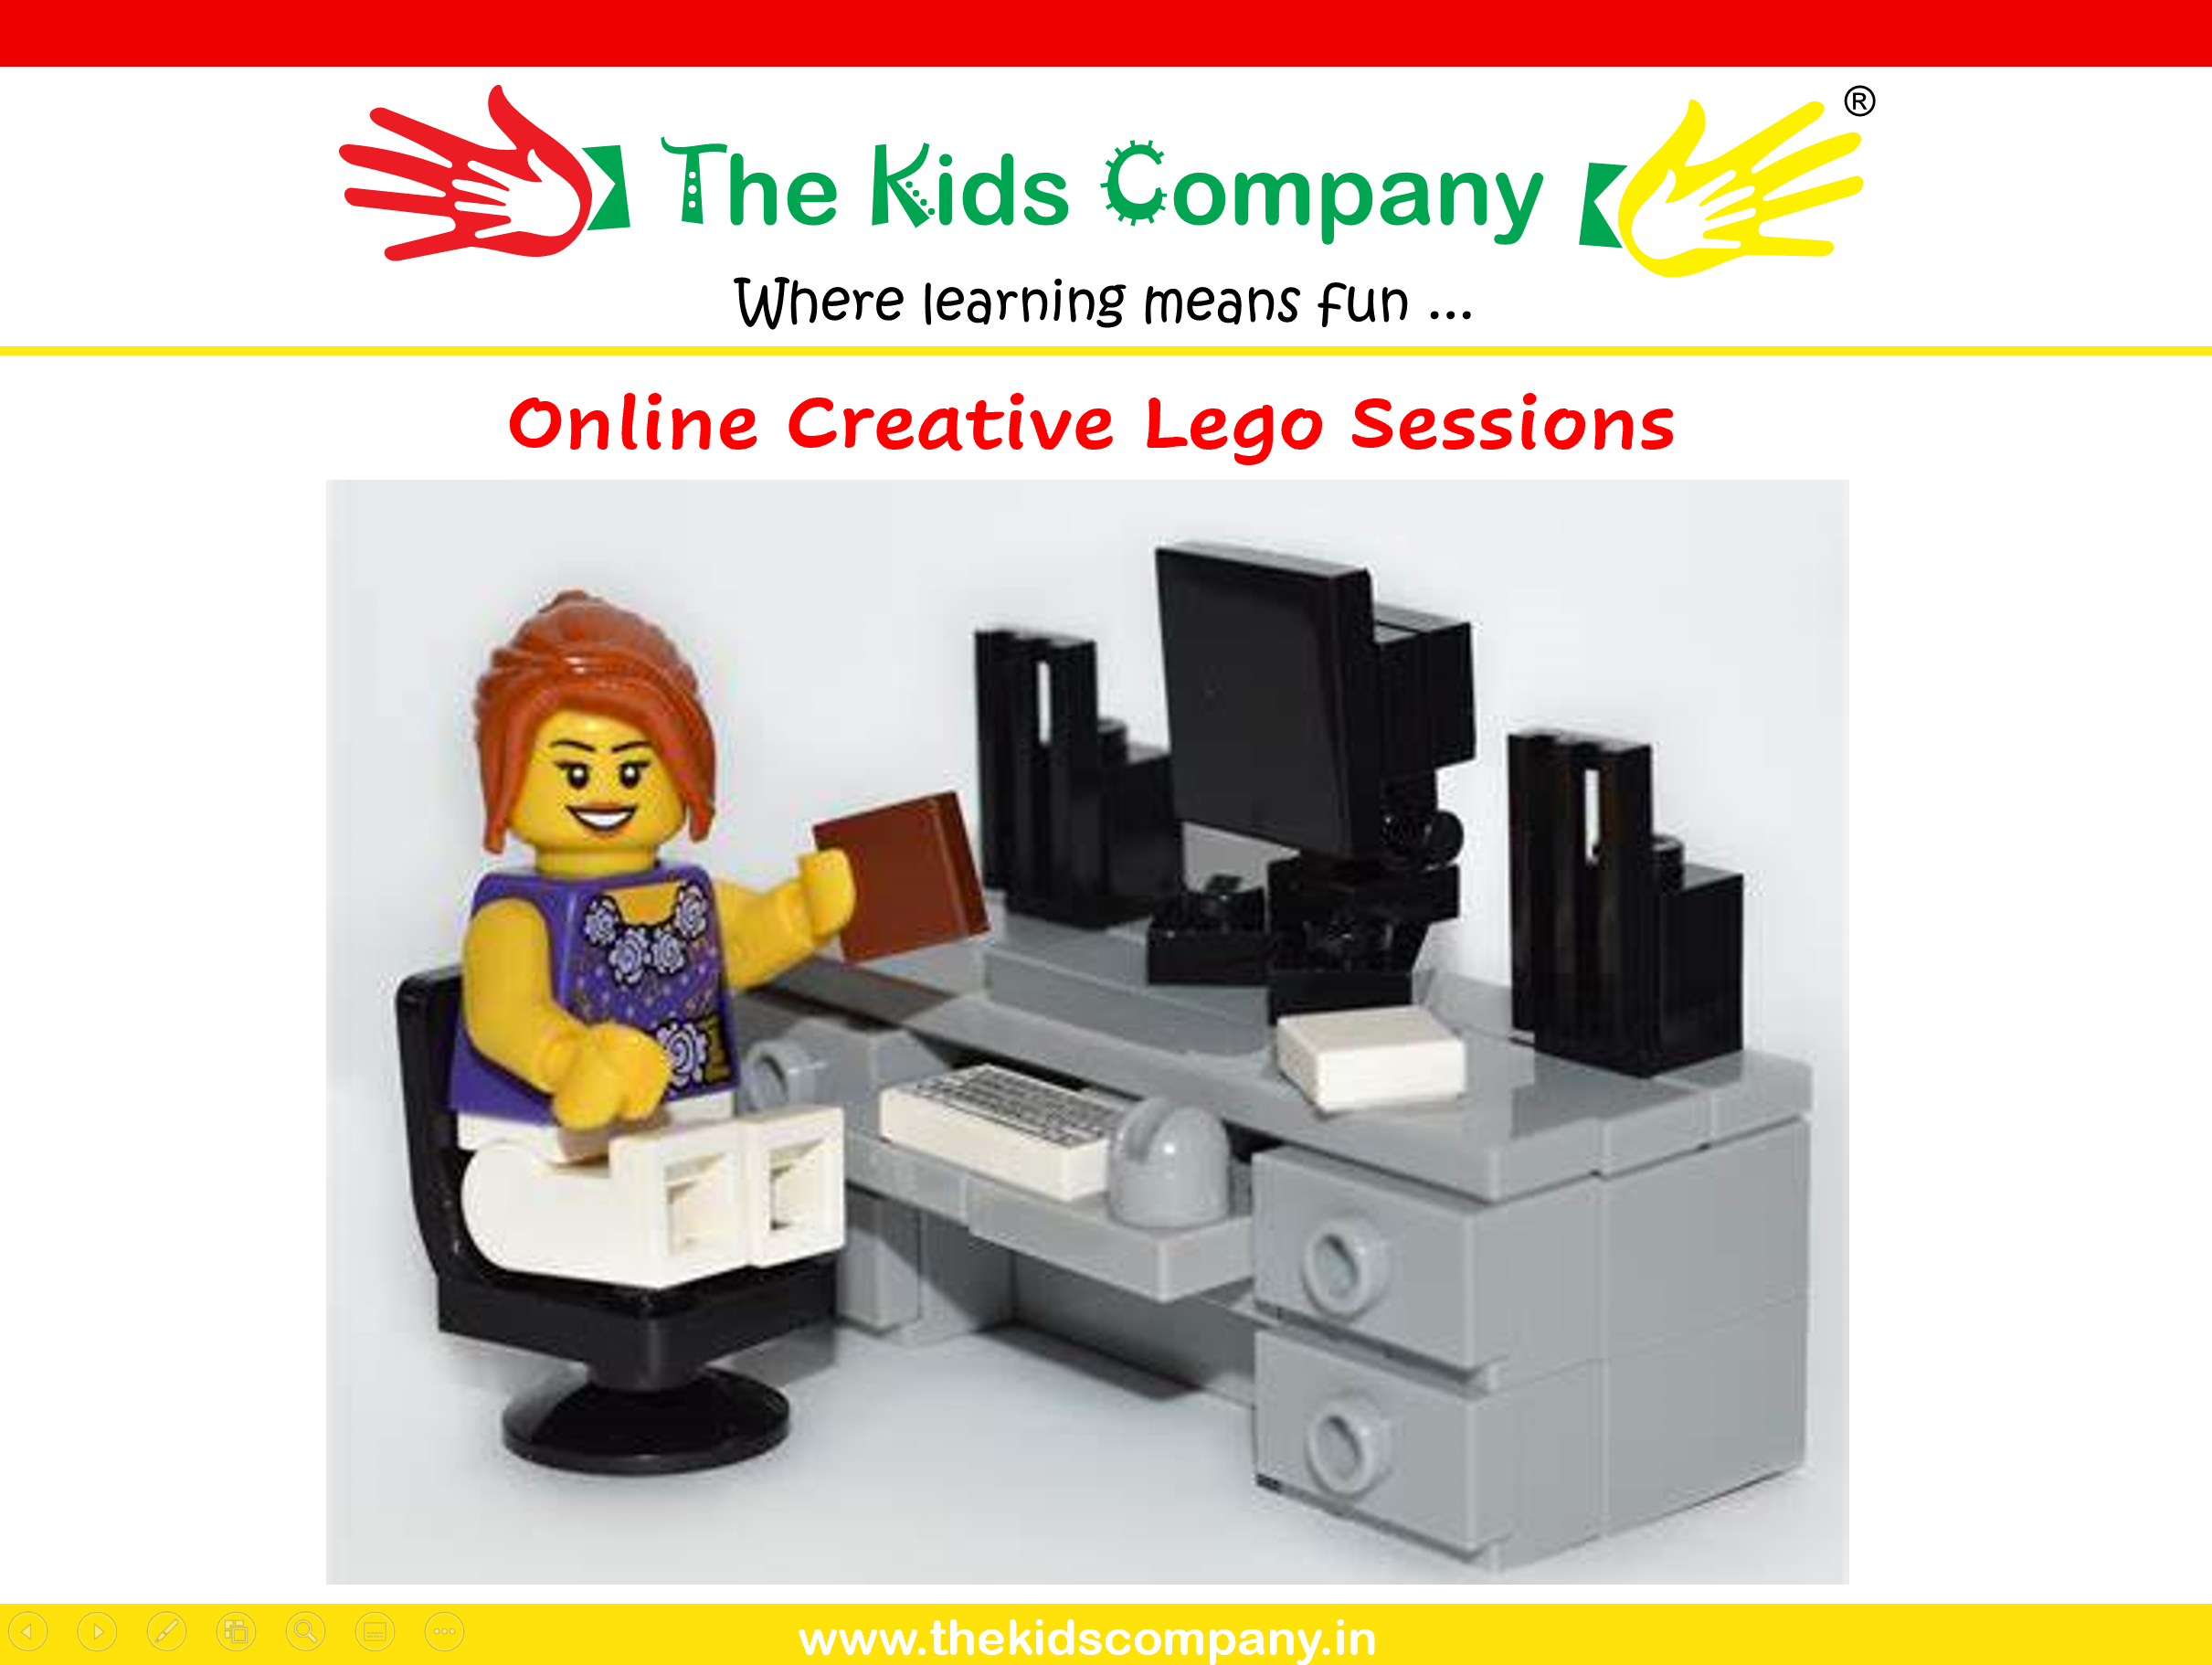 Online Creative Lego Sessions